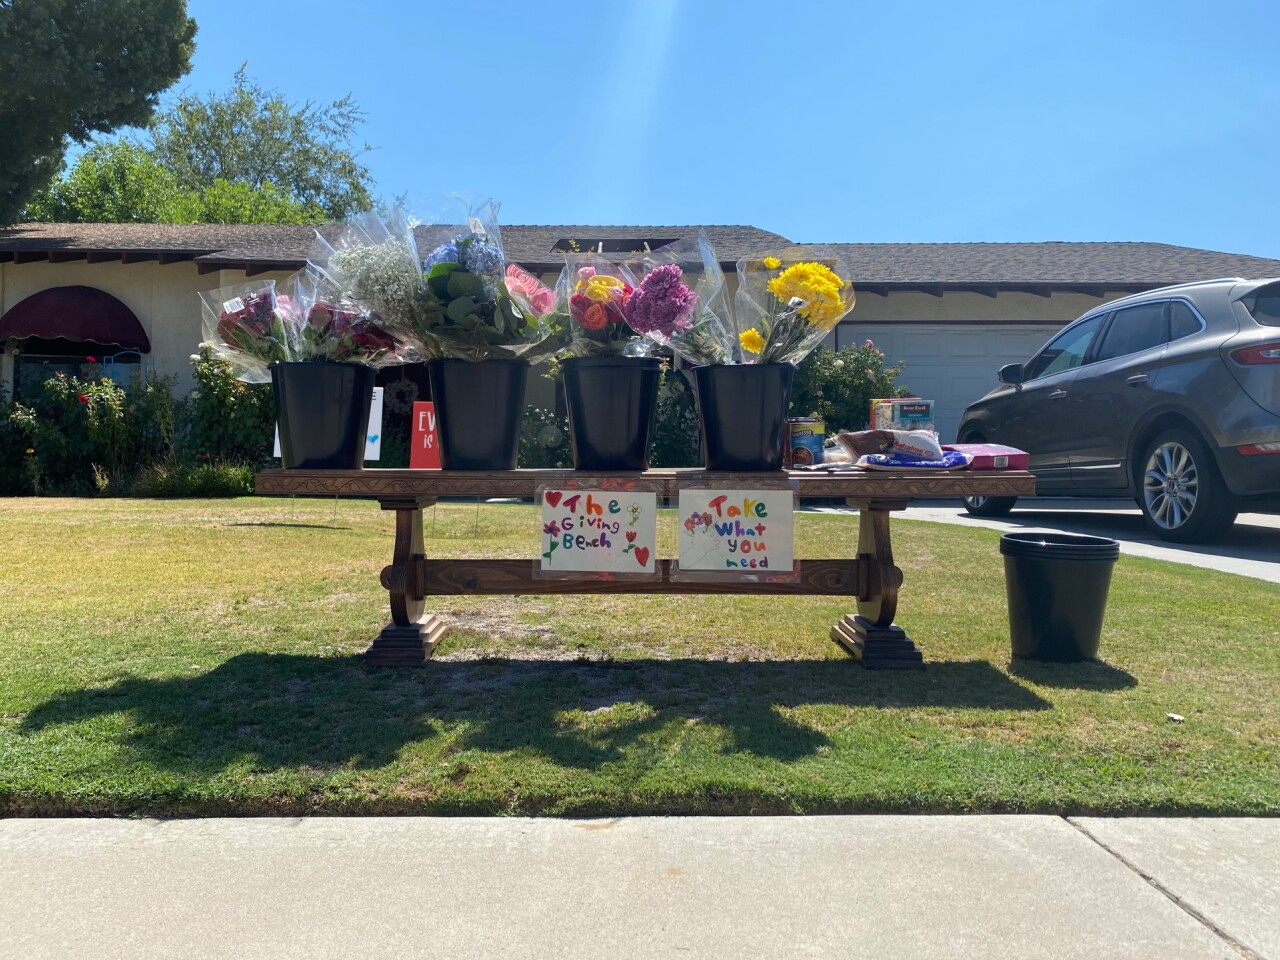 The Giving Bench